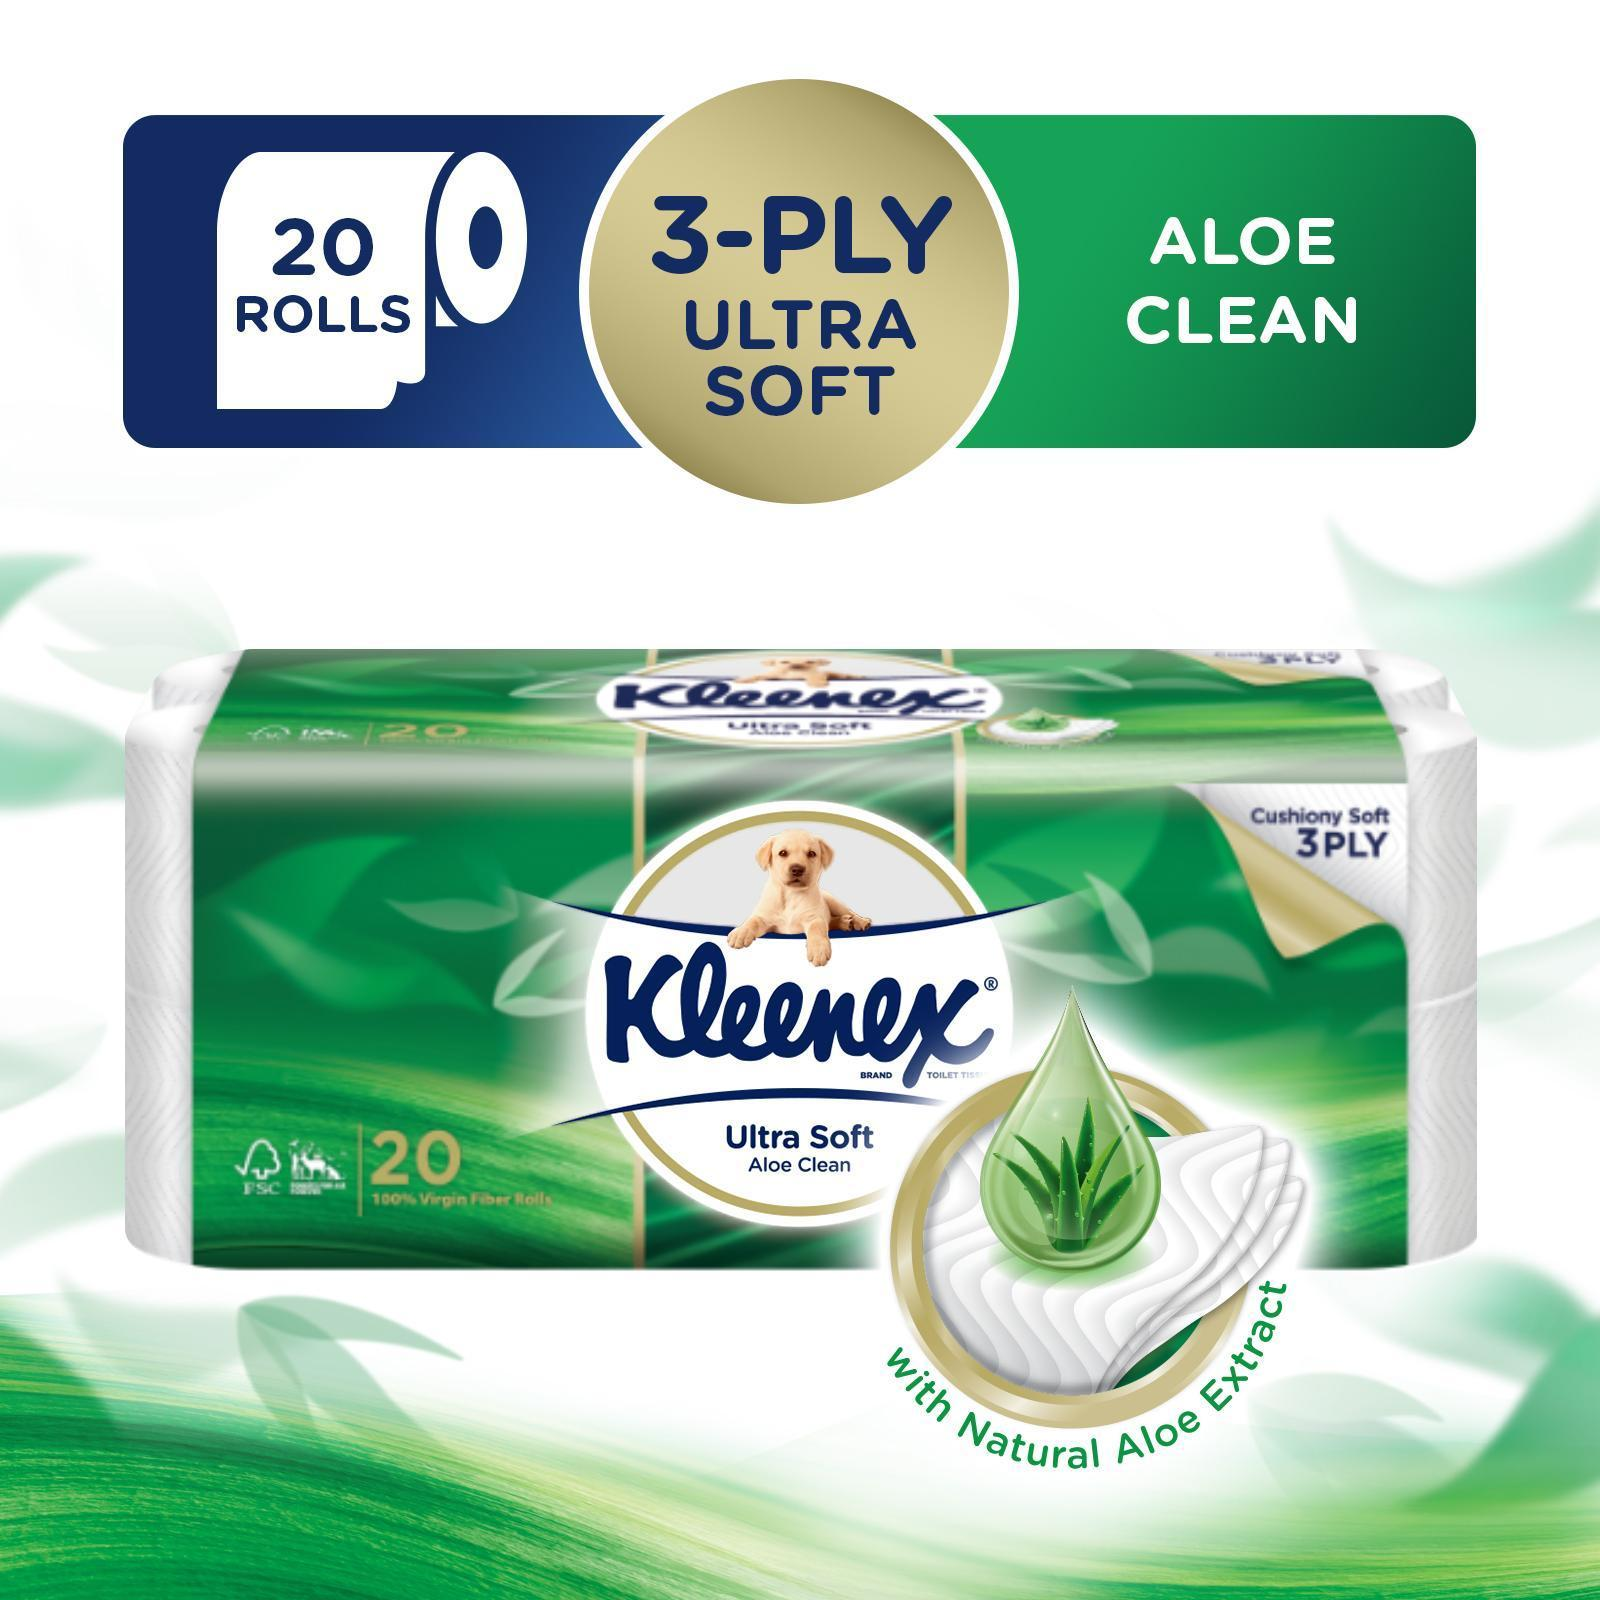 Kleenex Ultra Soft Aloe Clean 3-Ply Toilet Tissue FOC 8 Kleenex Pocket Pack